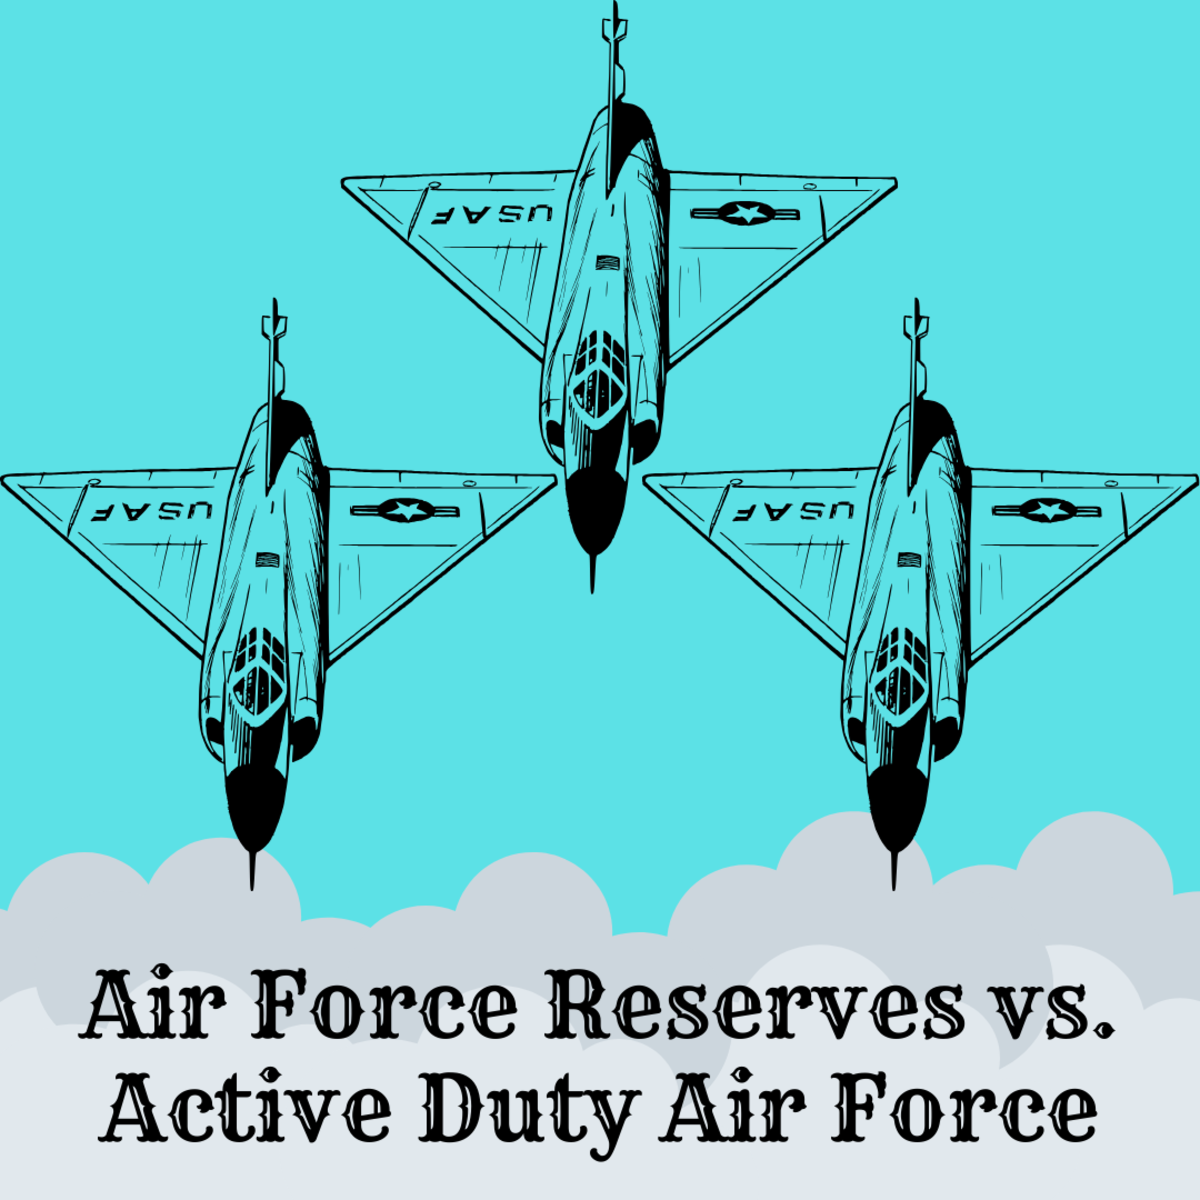 Air Force Reserves vs. Active Duty Air Force